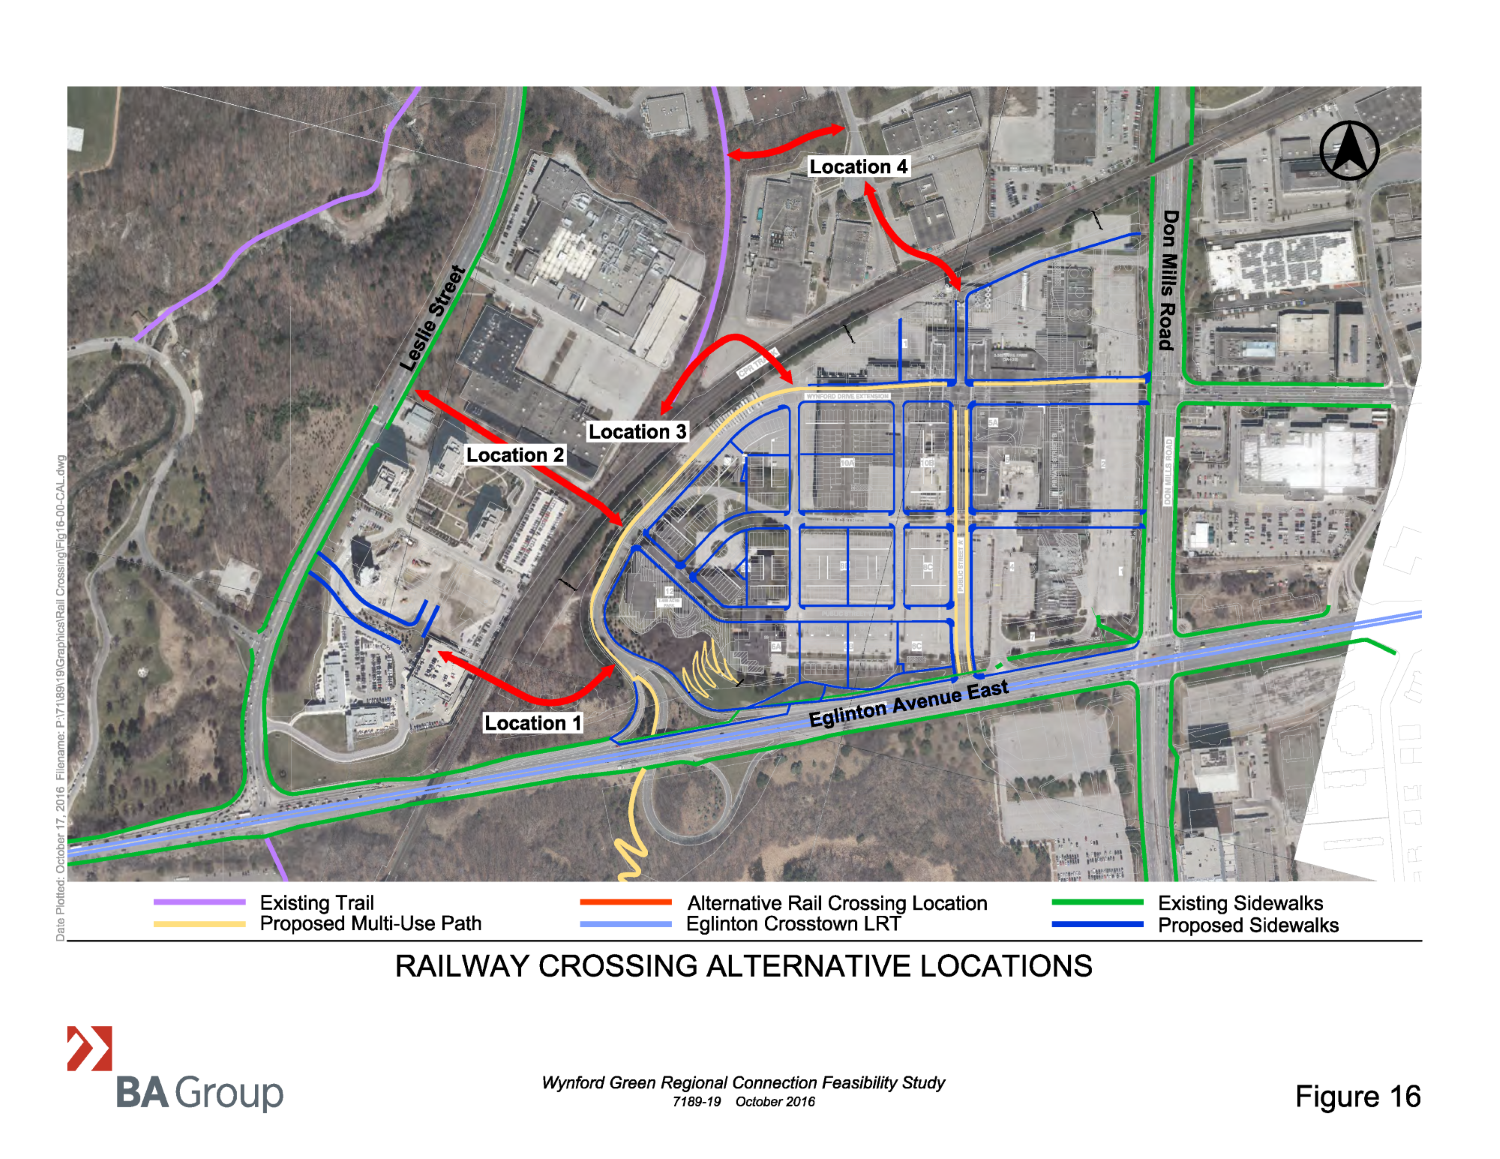 25_Rail_Crossing_Alternatives_Study_pg45_Page_45.png